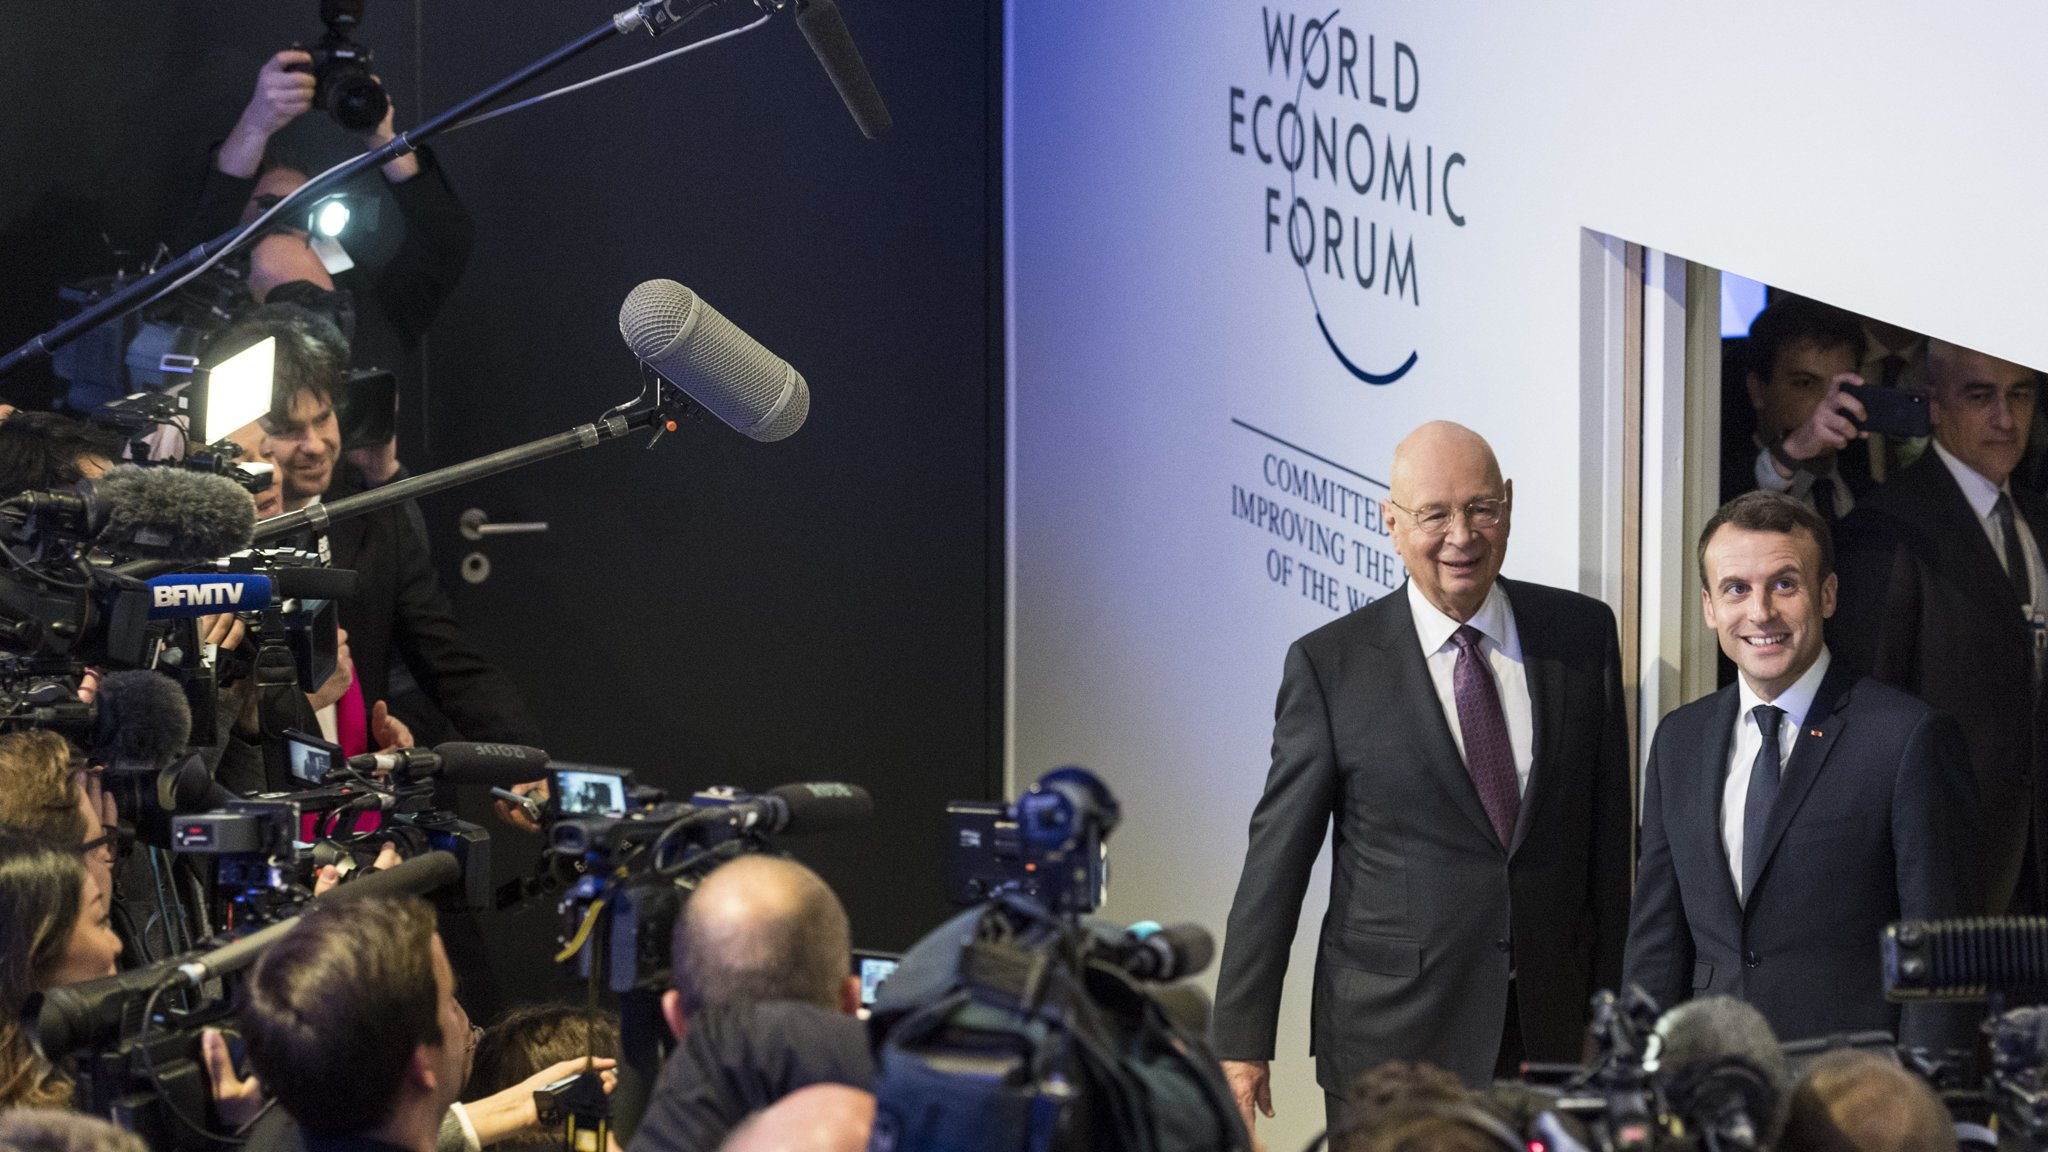 Emmanuel Macron leads Davos riposte to protectionism